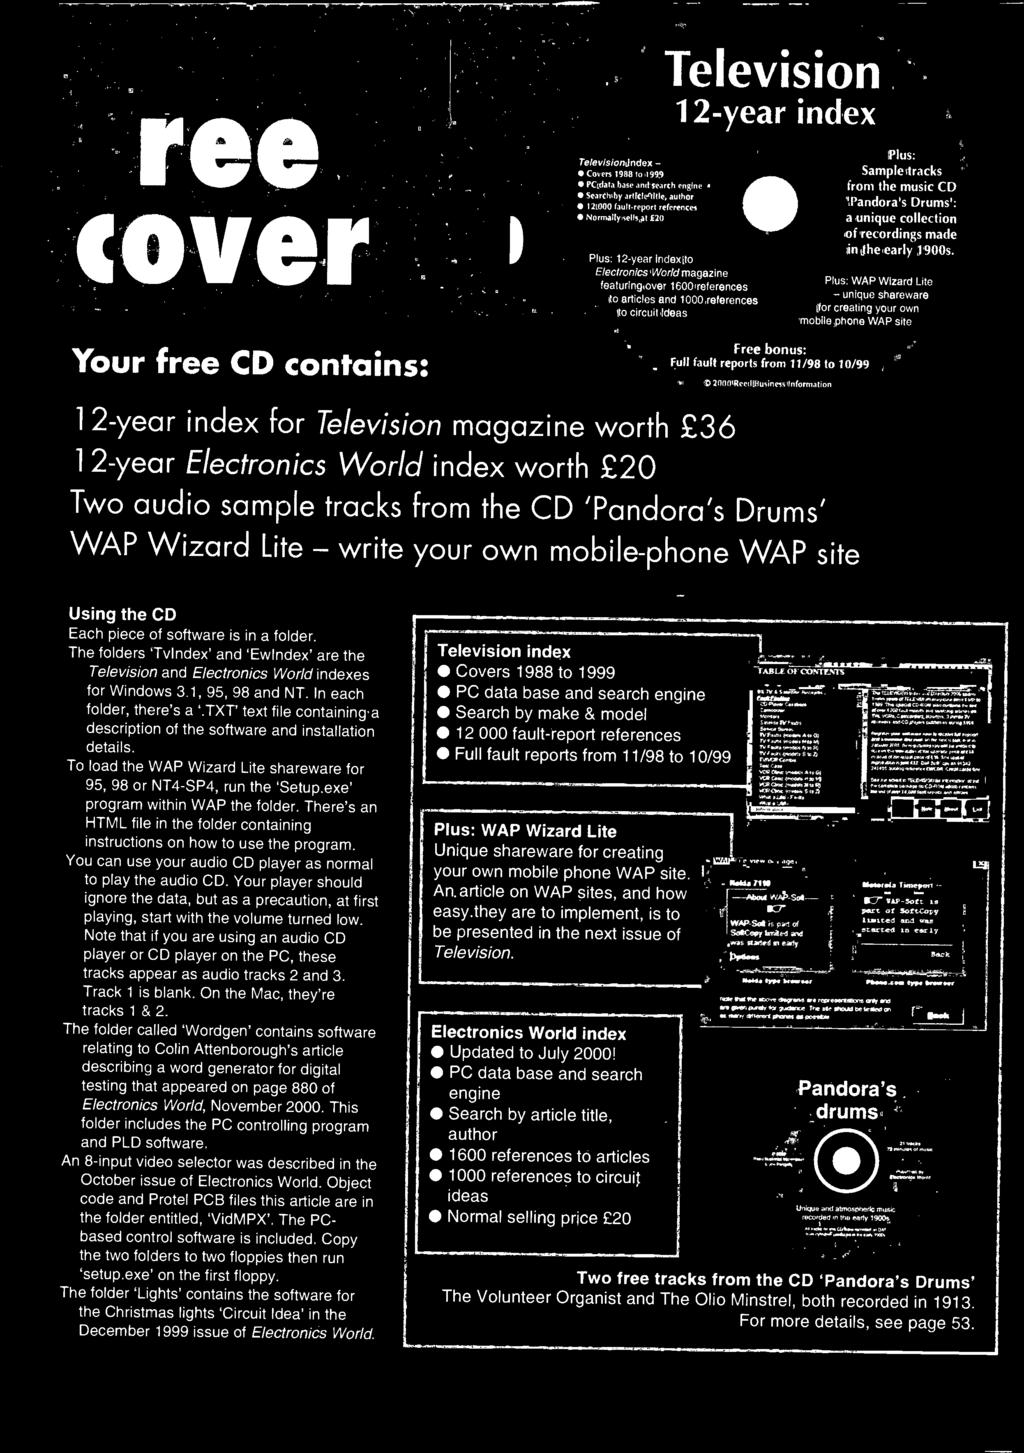 magazine worth 36 12-year Electronics World index worth 20 Two audio sample tracks from the CD 'Pandora's Drums' WAP Wizard Lite - write your own mobile -phone WAP site Using the CD Each piece of